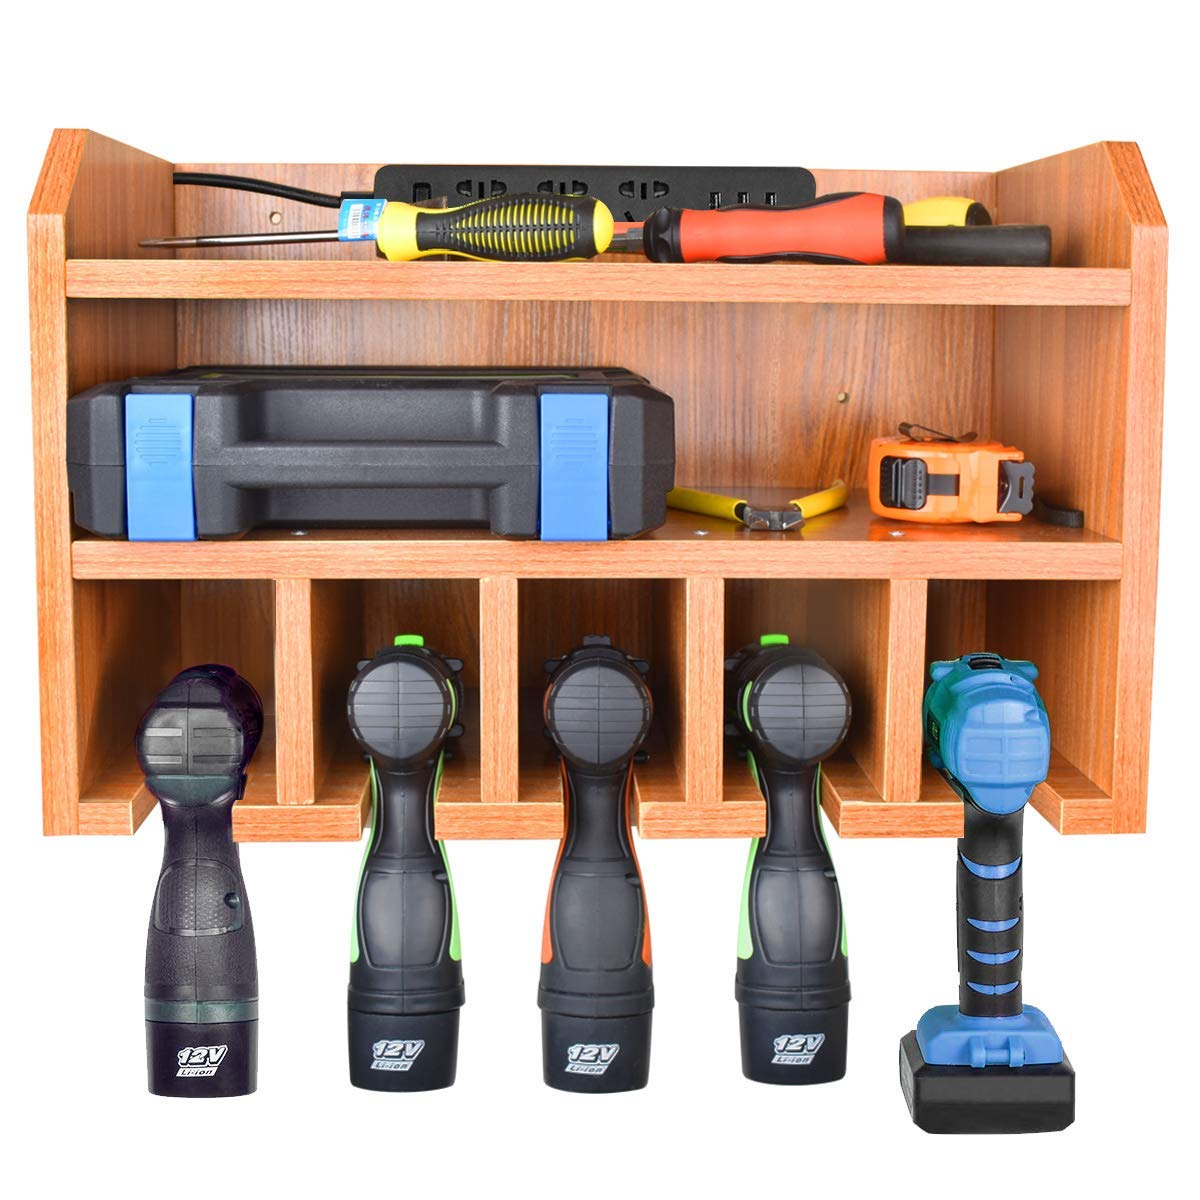 Power Tool Charging Storage - Drill Storage Organization Hanging Drill Wall Holder, Wall Mount Tools Home & Garage Storage System (Need to assemble yourself) by XINTUO